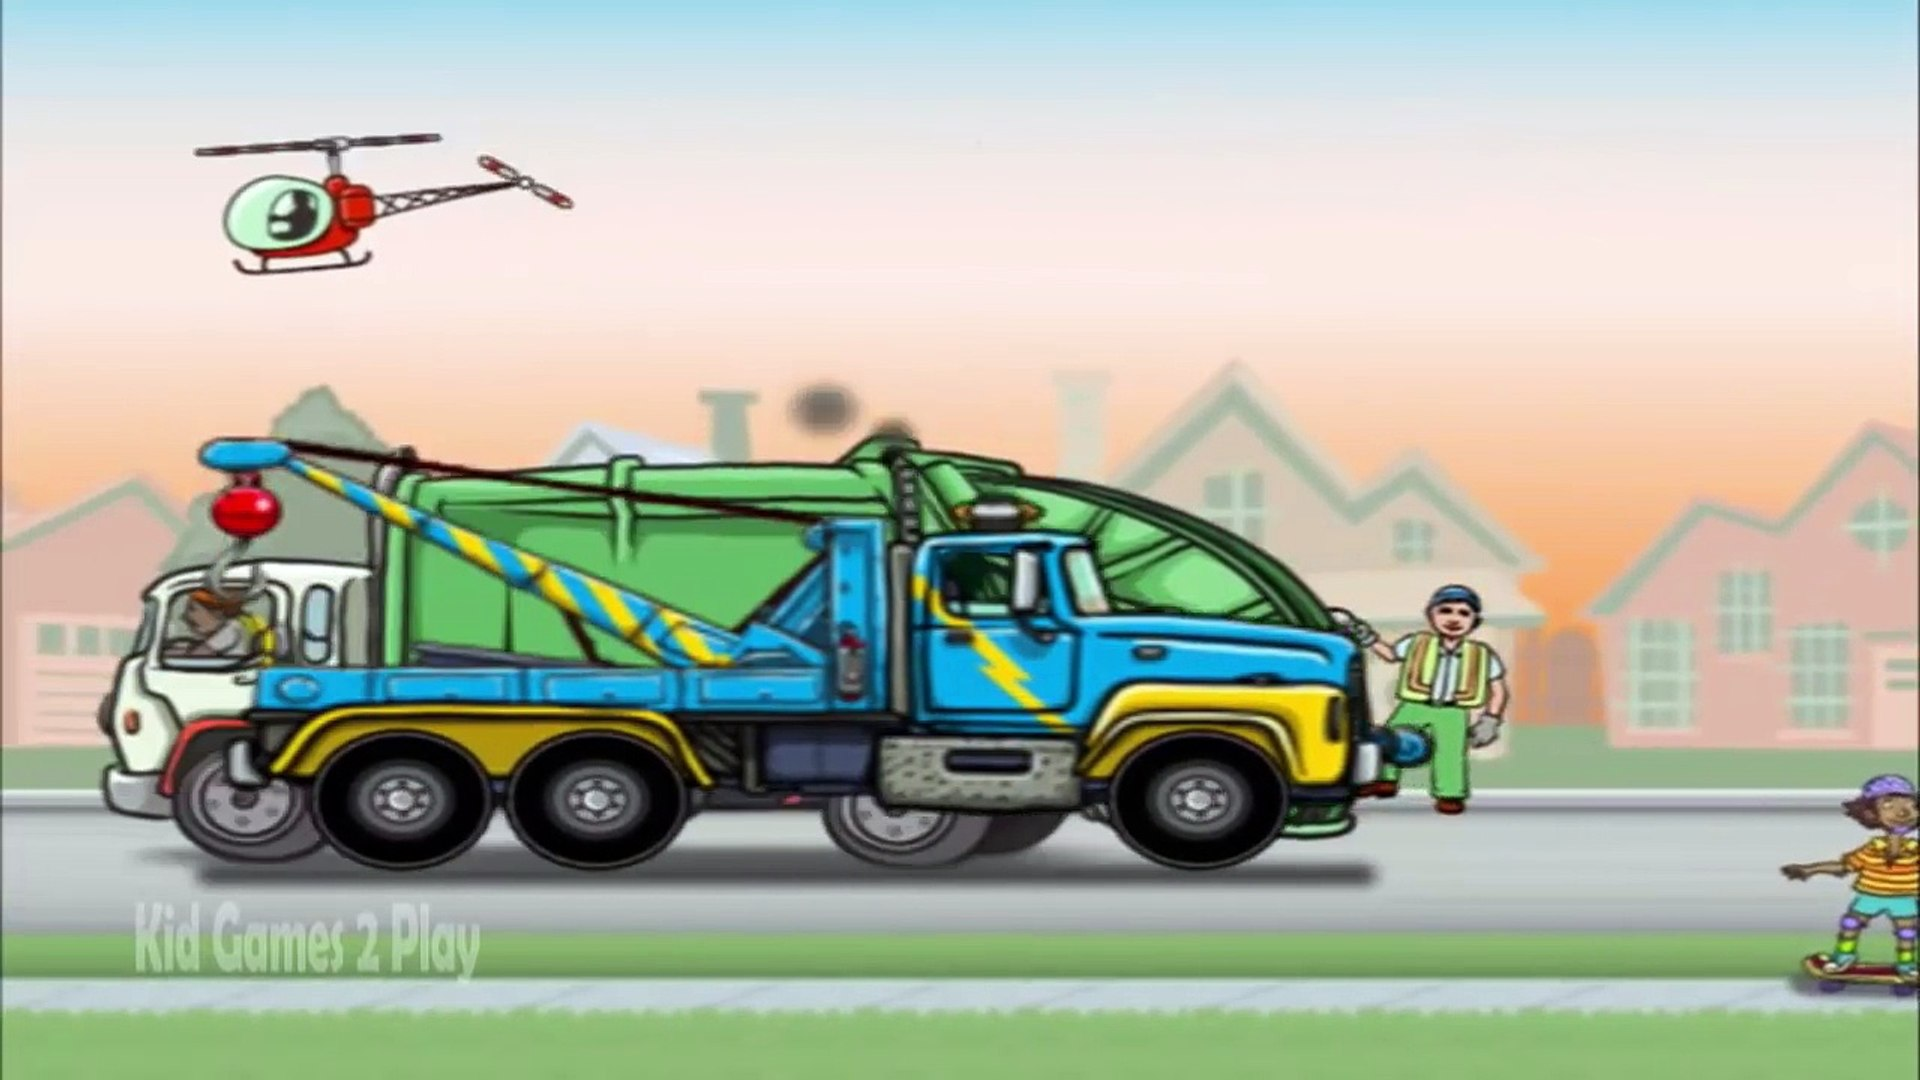 Garbage Trucks Game for Kids - Kids Learn How to Garbage Trucks Operation - Education Game